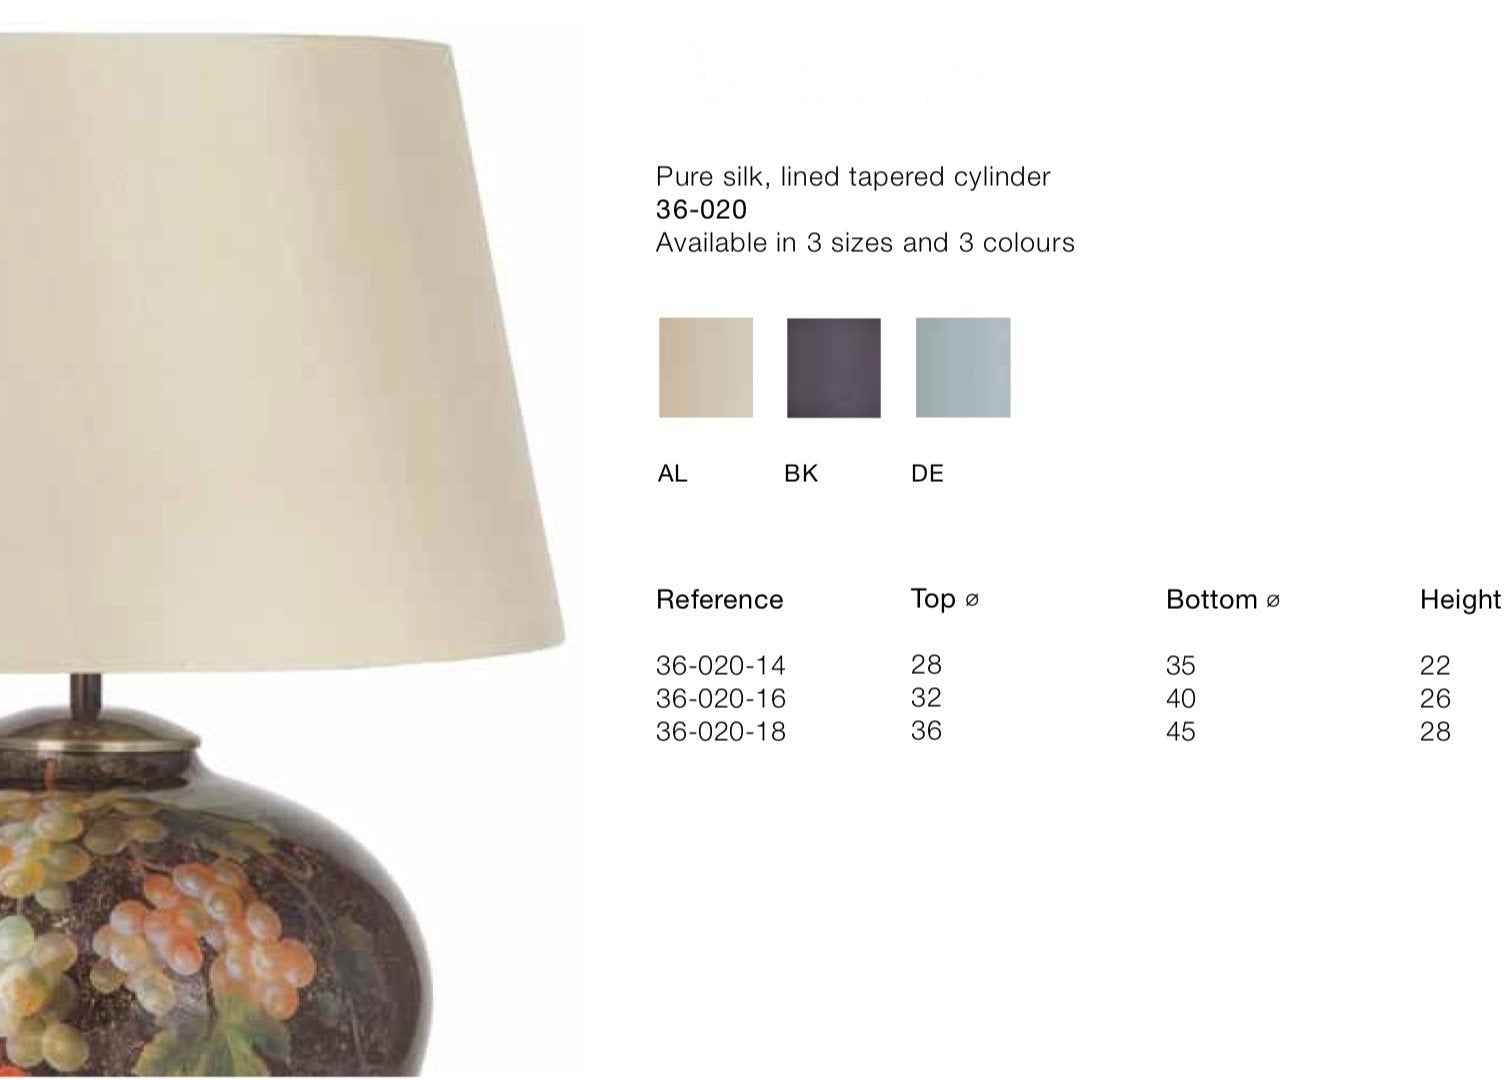 Lamp Shade - Pure Silk Lined & Tapered